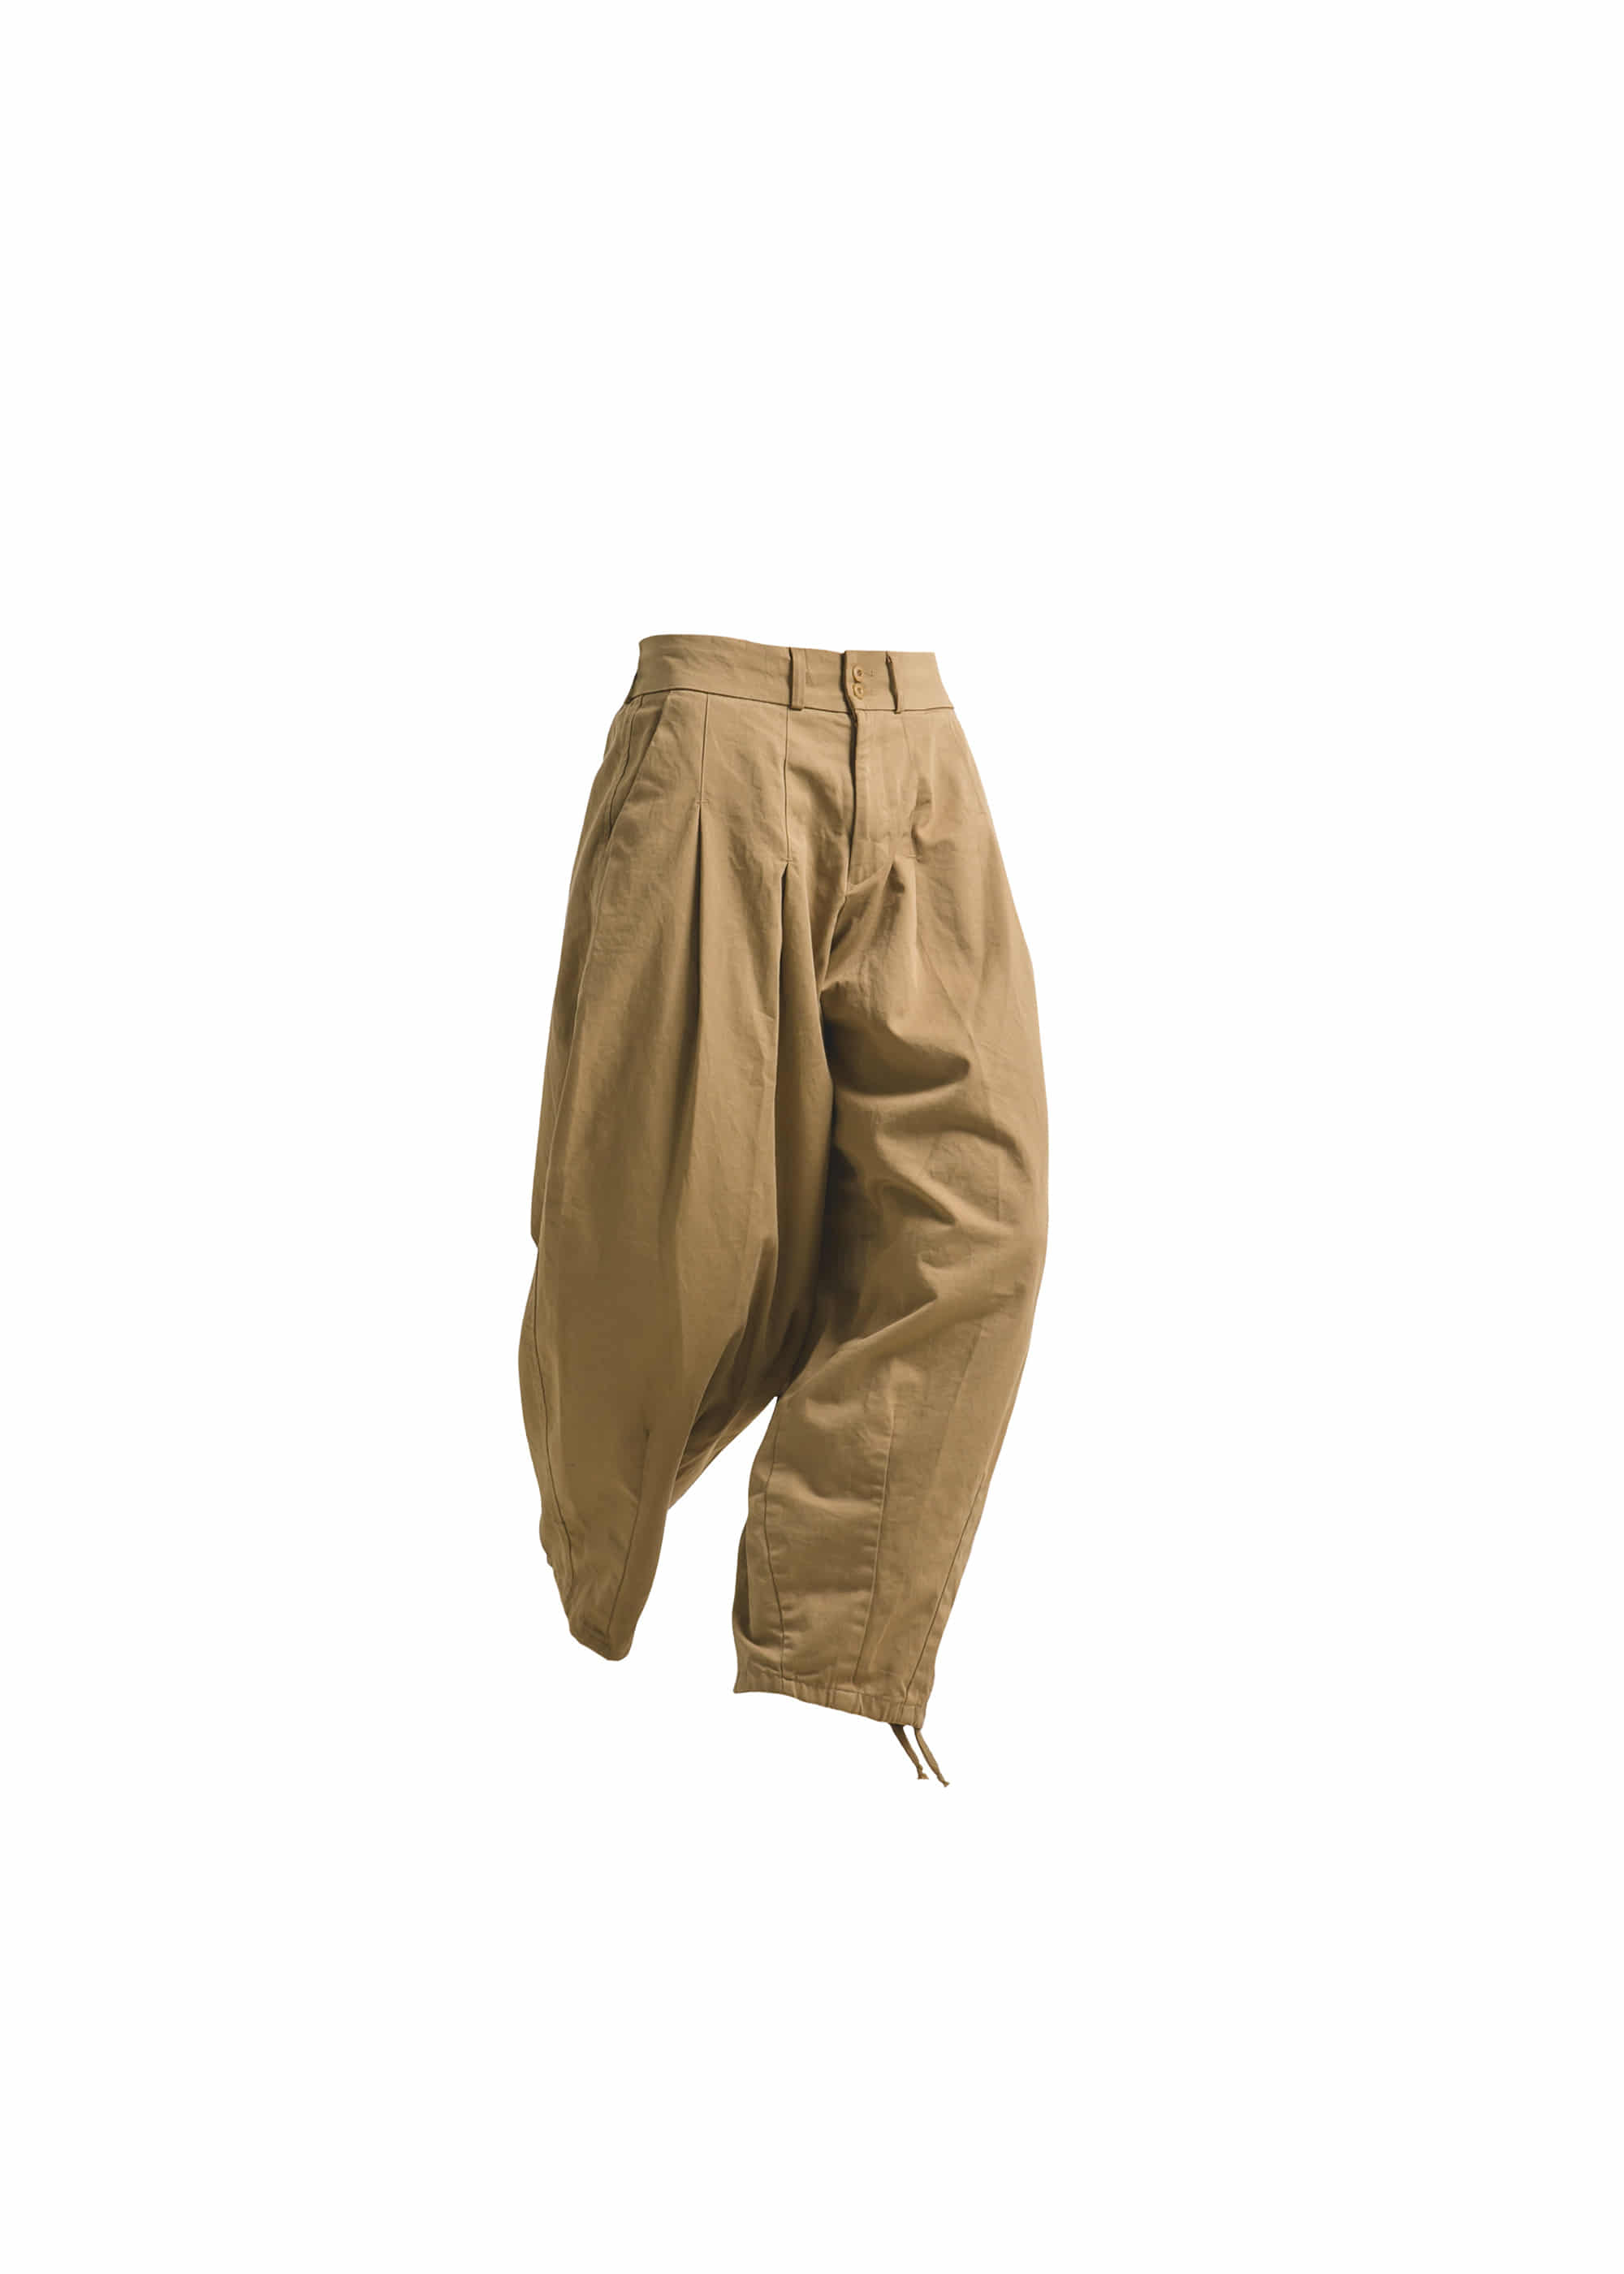 [AG] Cotton Easy Balloon Pants - Beige